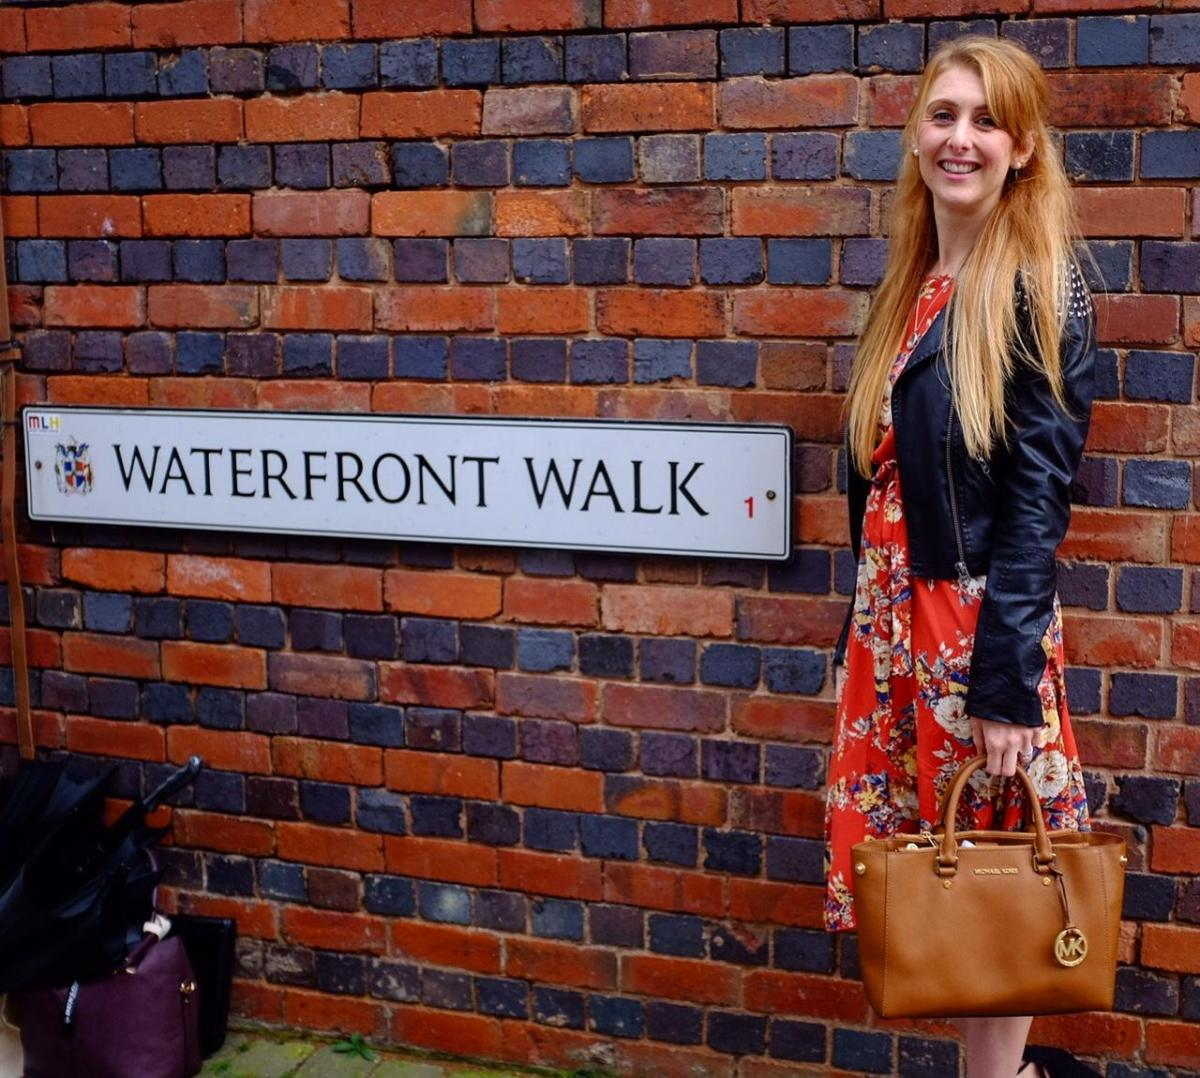 waterfront walk sign. and girl